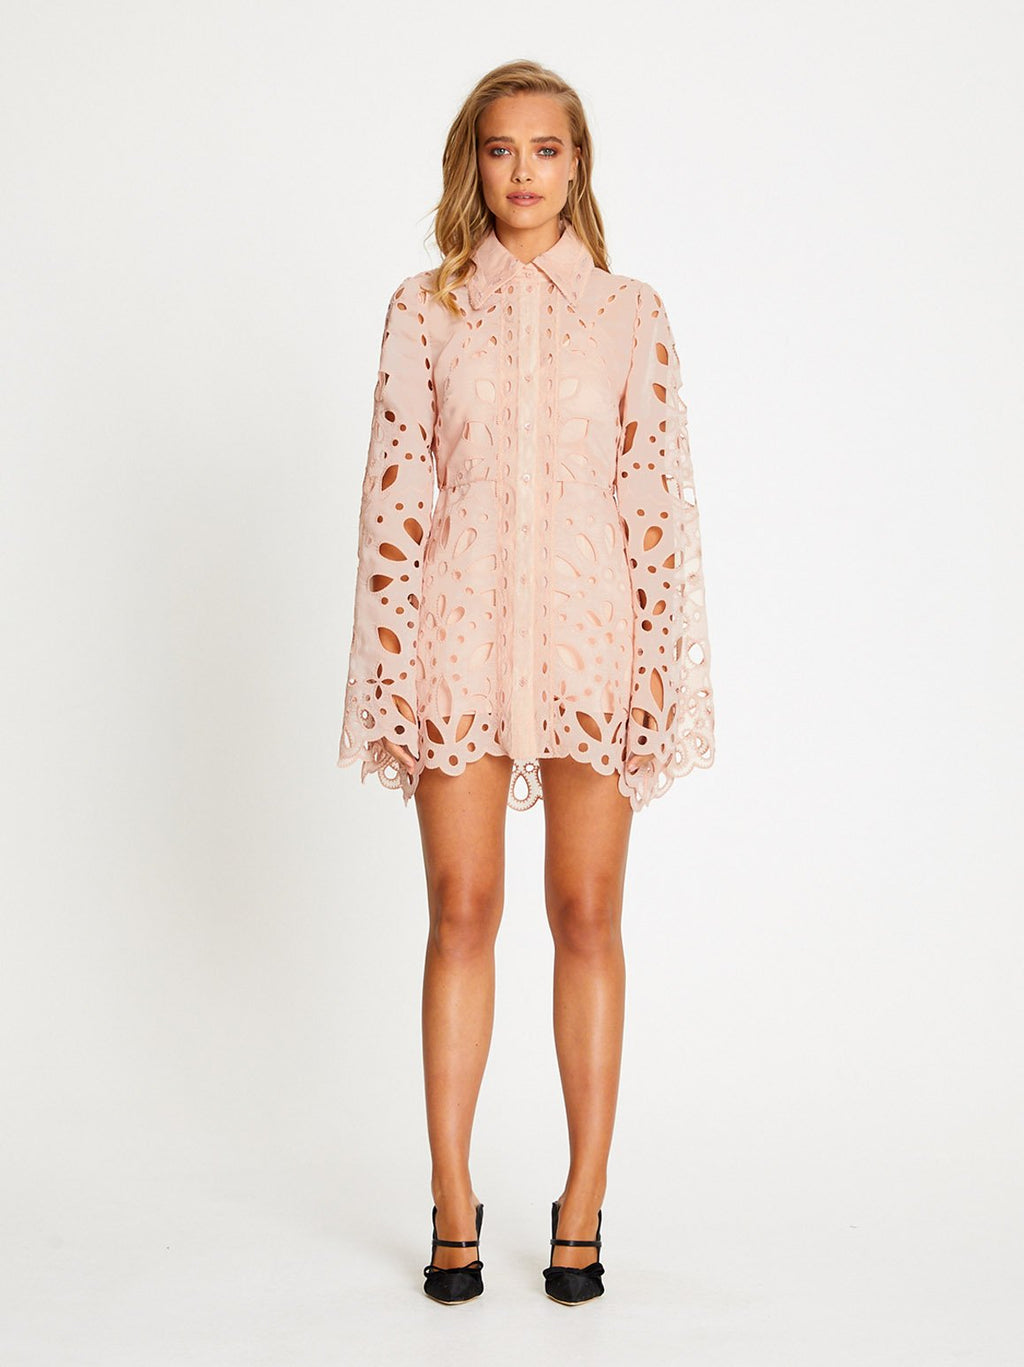 BAUDELAIRE MINI DRESS